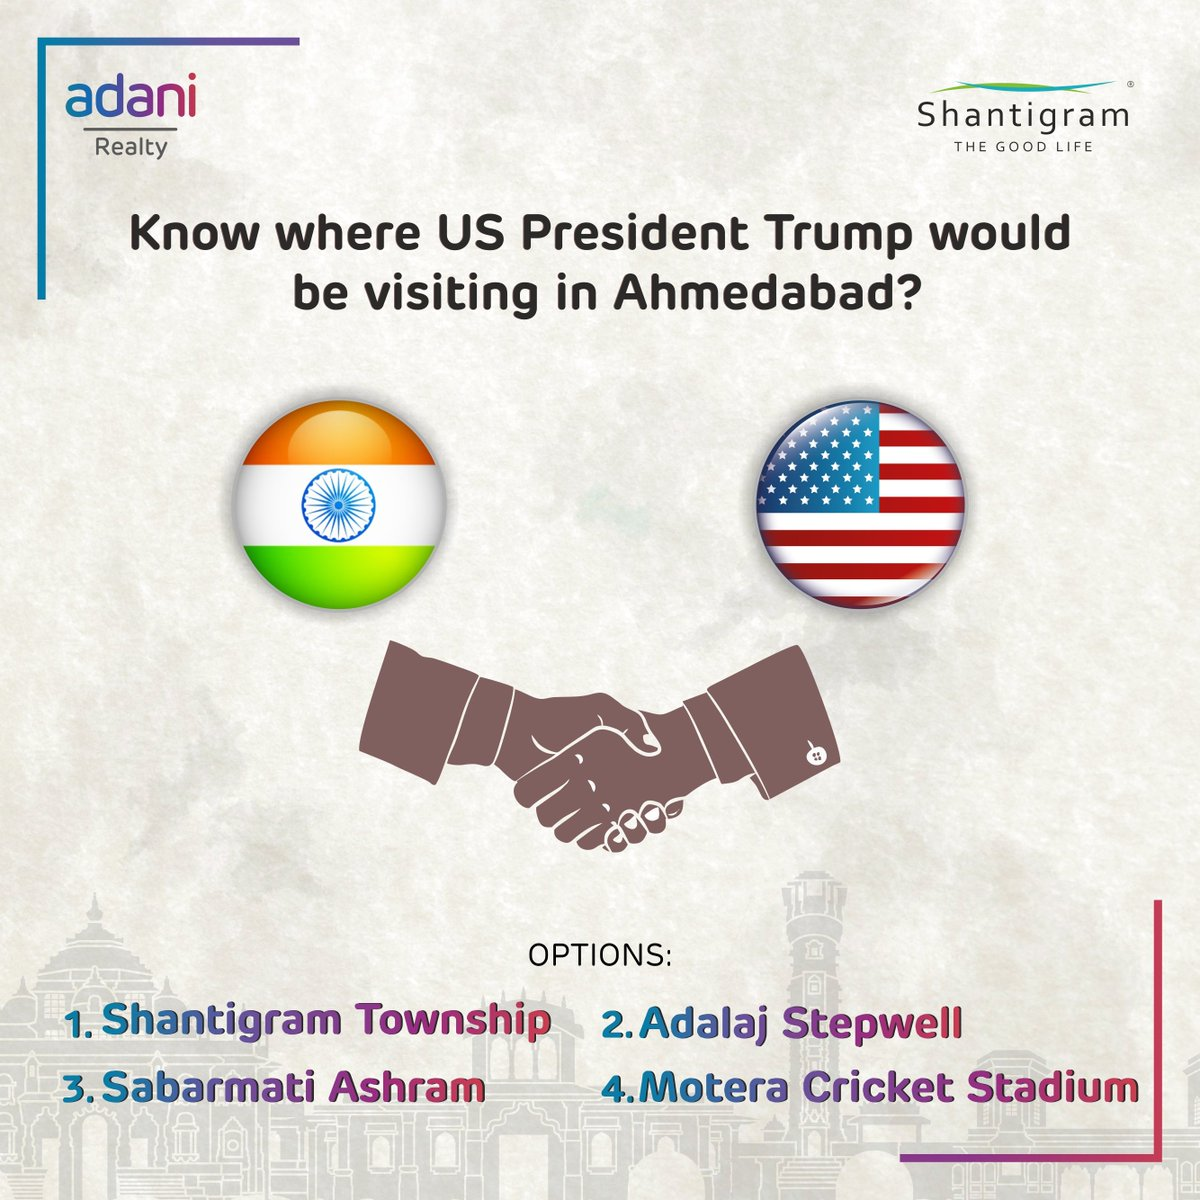 """As we know, US President Donald Trump would be treated to India's rich cultural heritage in Ahmedabad(Gujarat),  hosted by Prime Minister Narendra Modi at the """"Namaste Trump"""" event. Where is this event, that has few parallels in the country and elsewhere, held? Comment below!"""